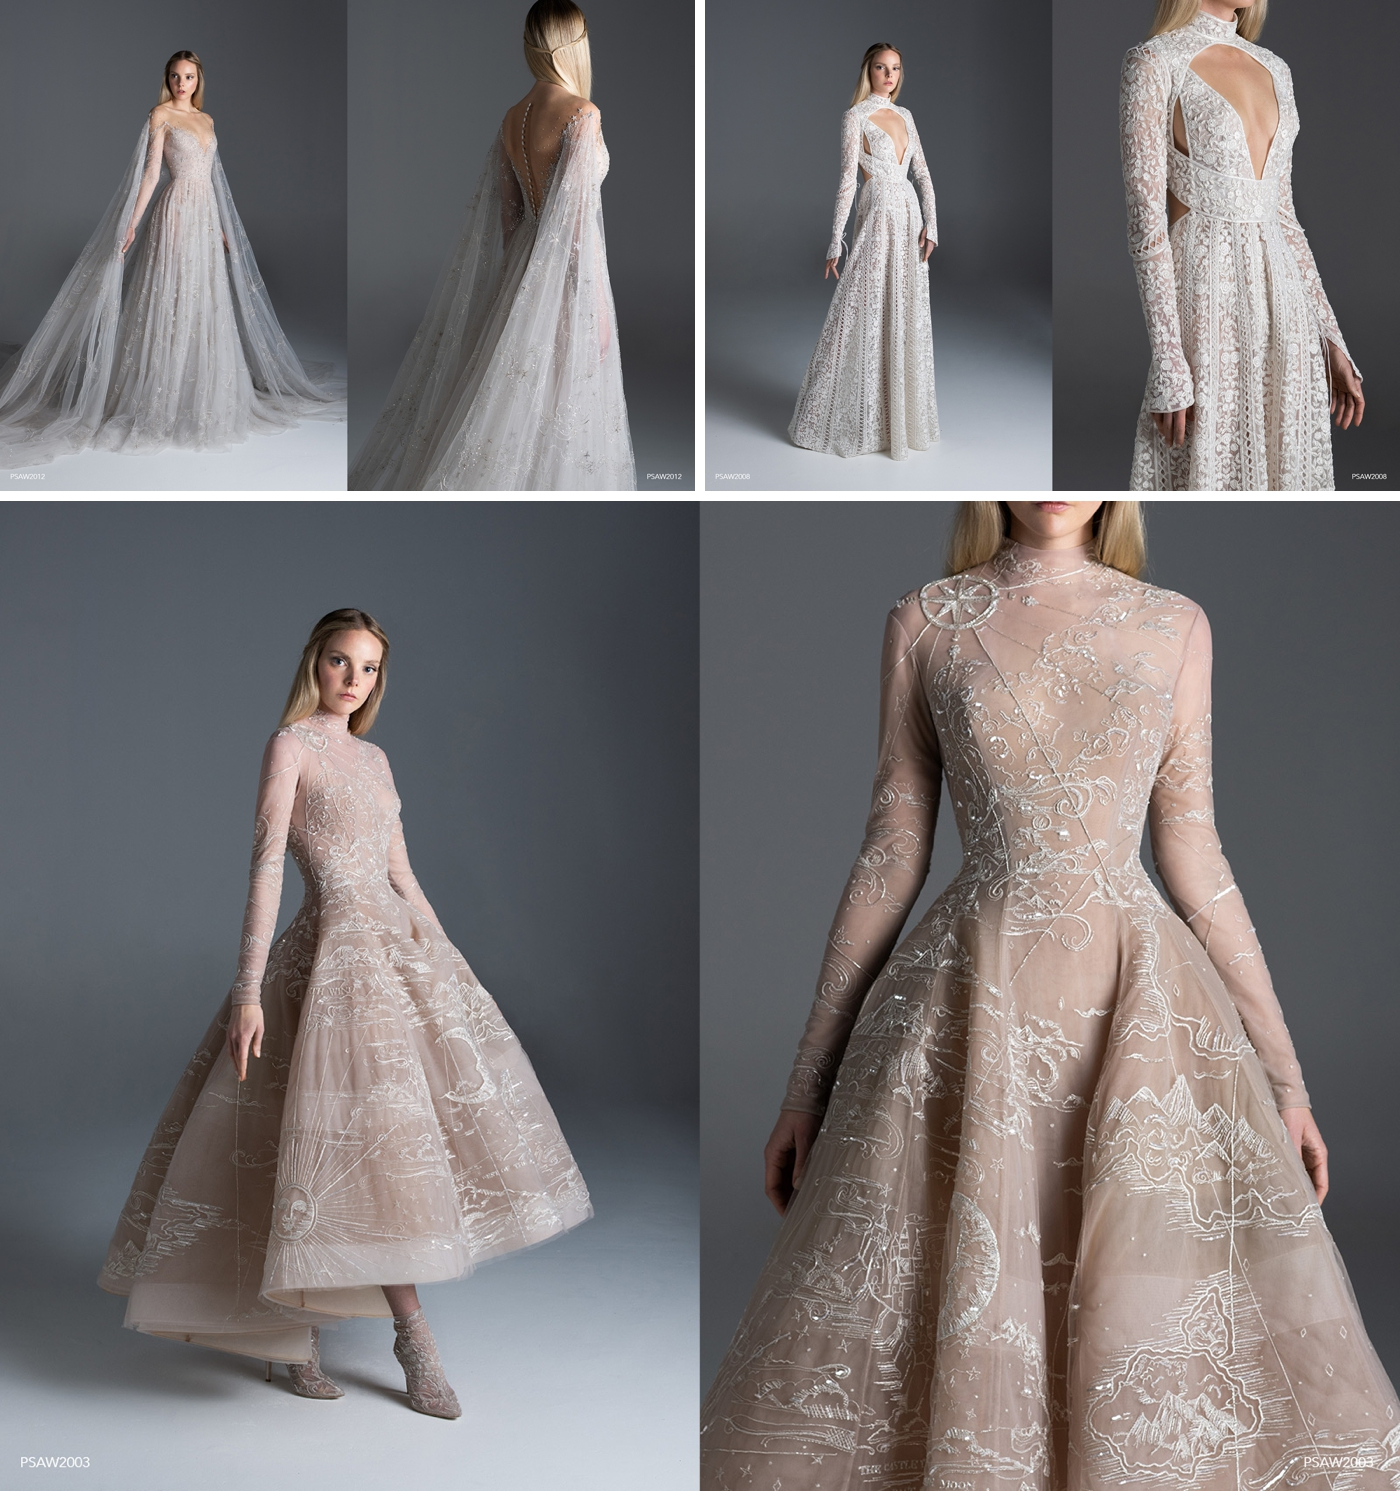 Paolo Sebastian wedding dress designer